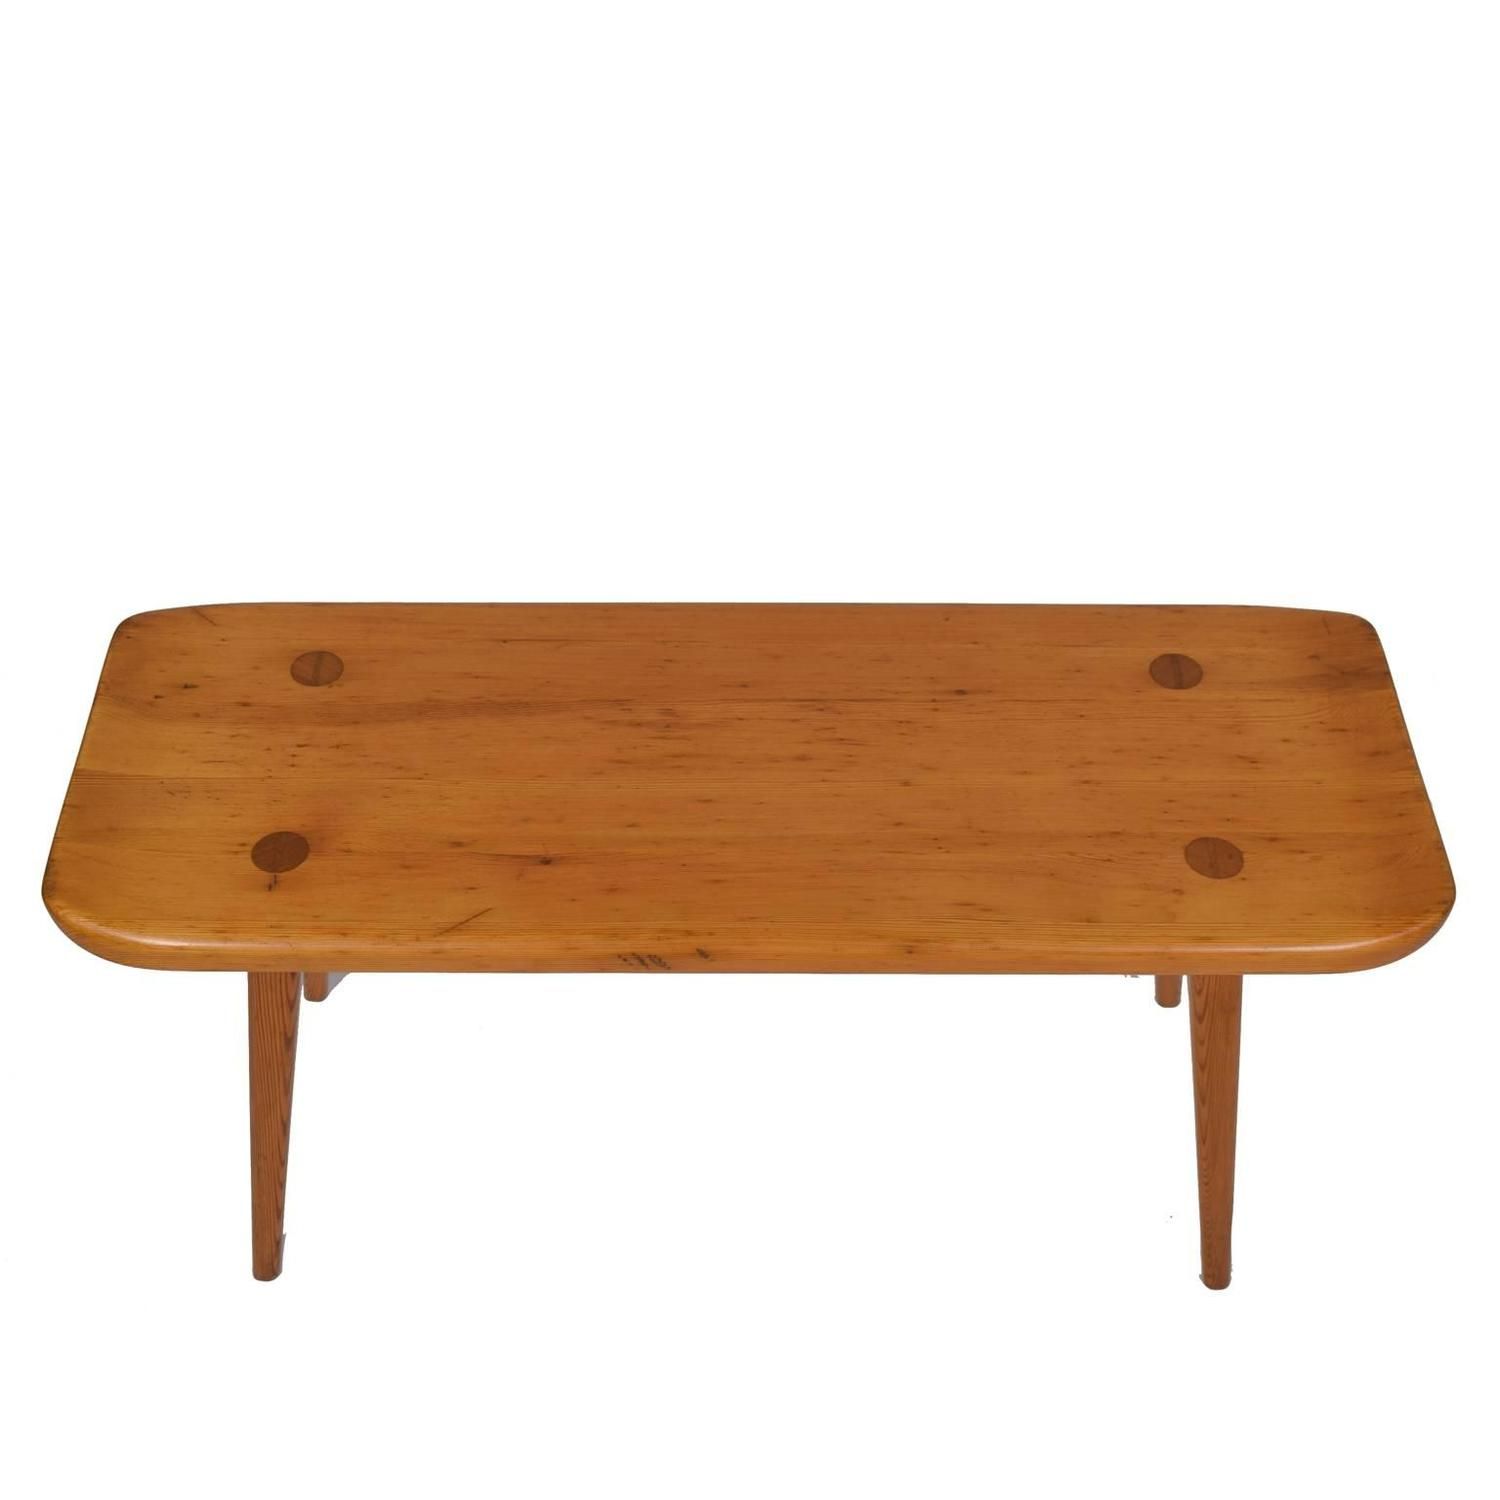 quot visings 246 quot pine bench by carl malmsten for sale at 1stdibs